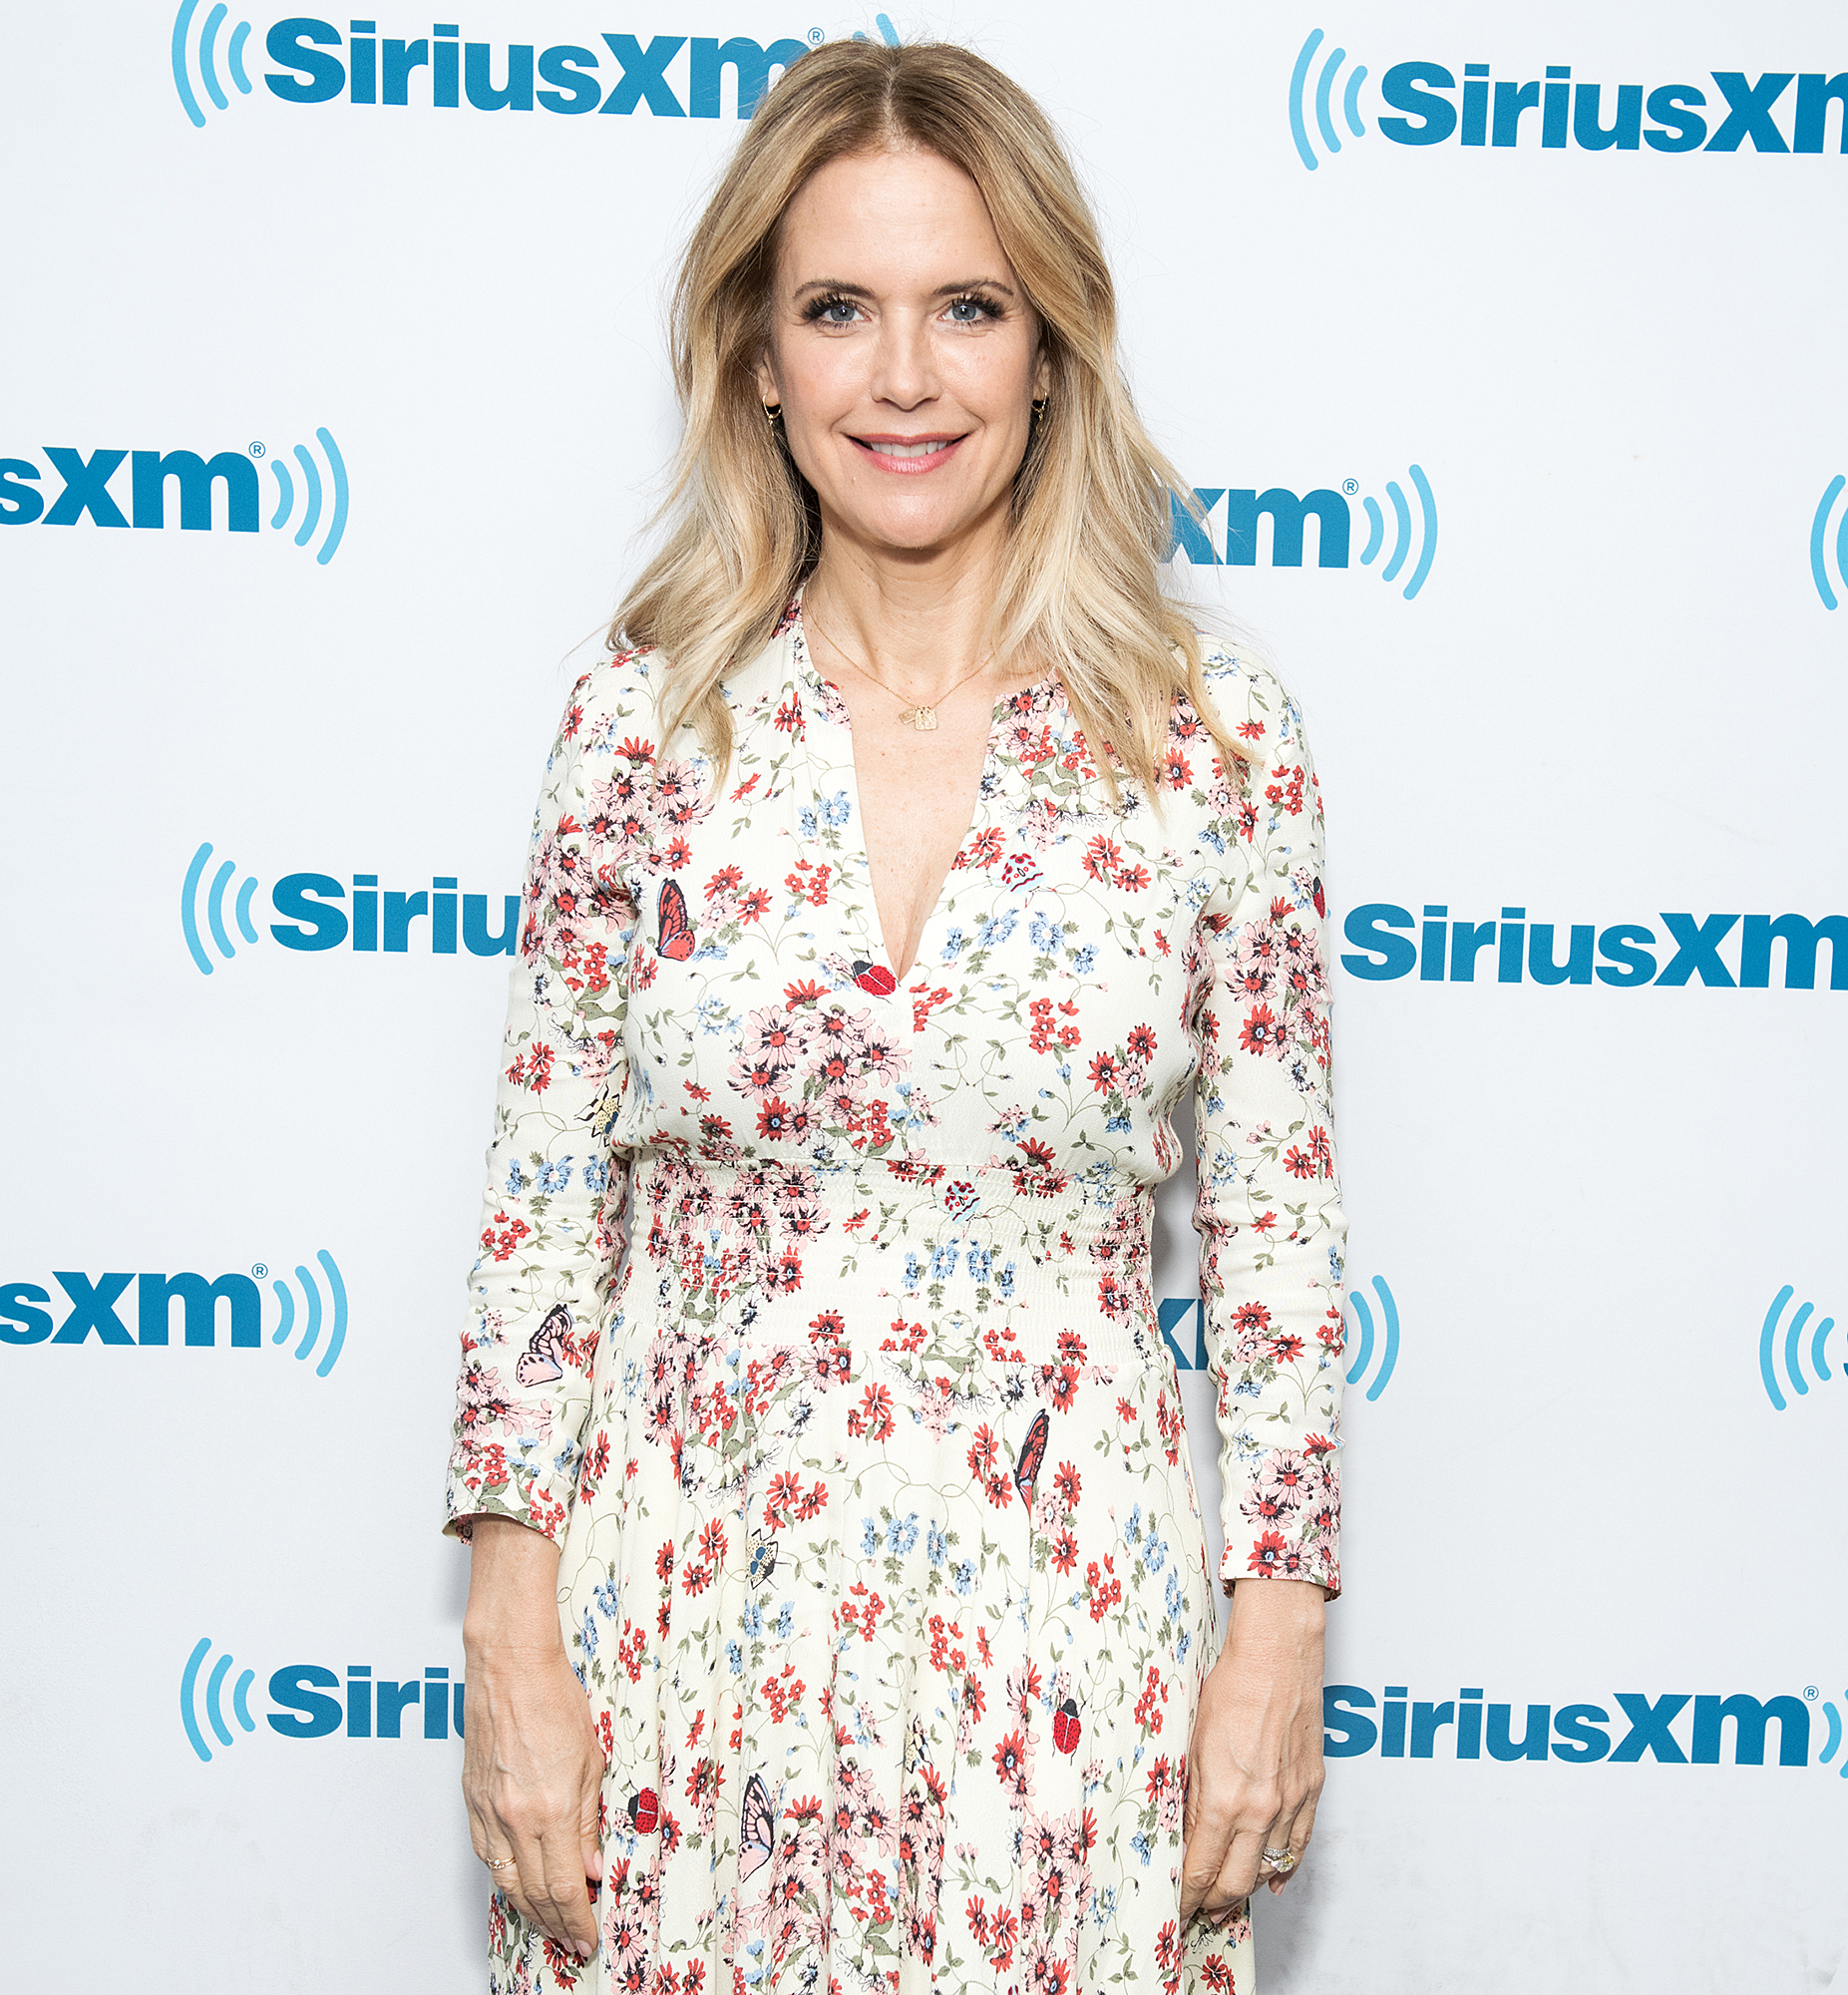 Kelly Preston 25 Things You Don't Know About Me - Kelly Preston visits the SiriusXM Studios on June 11, 2018 in New York City.